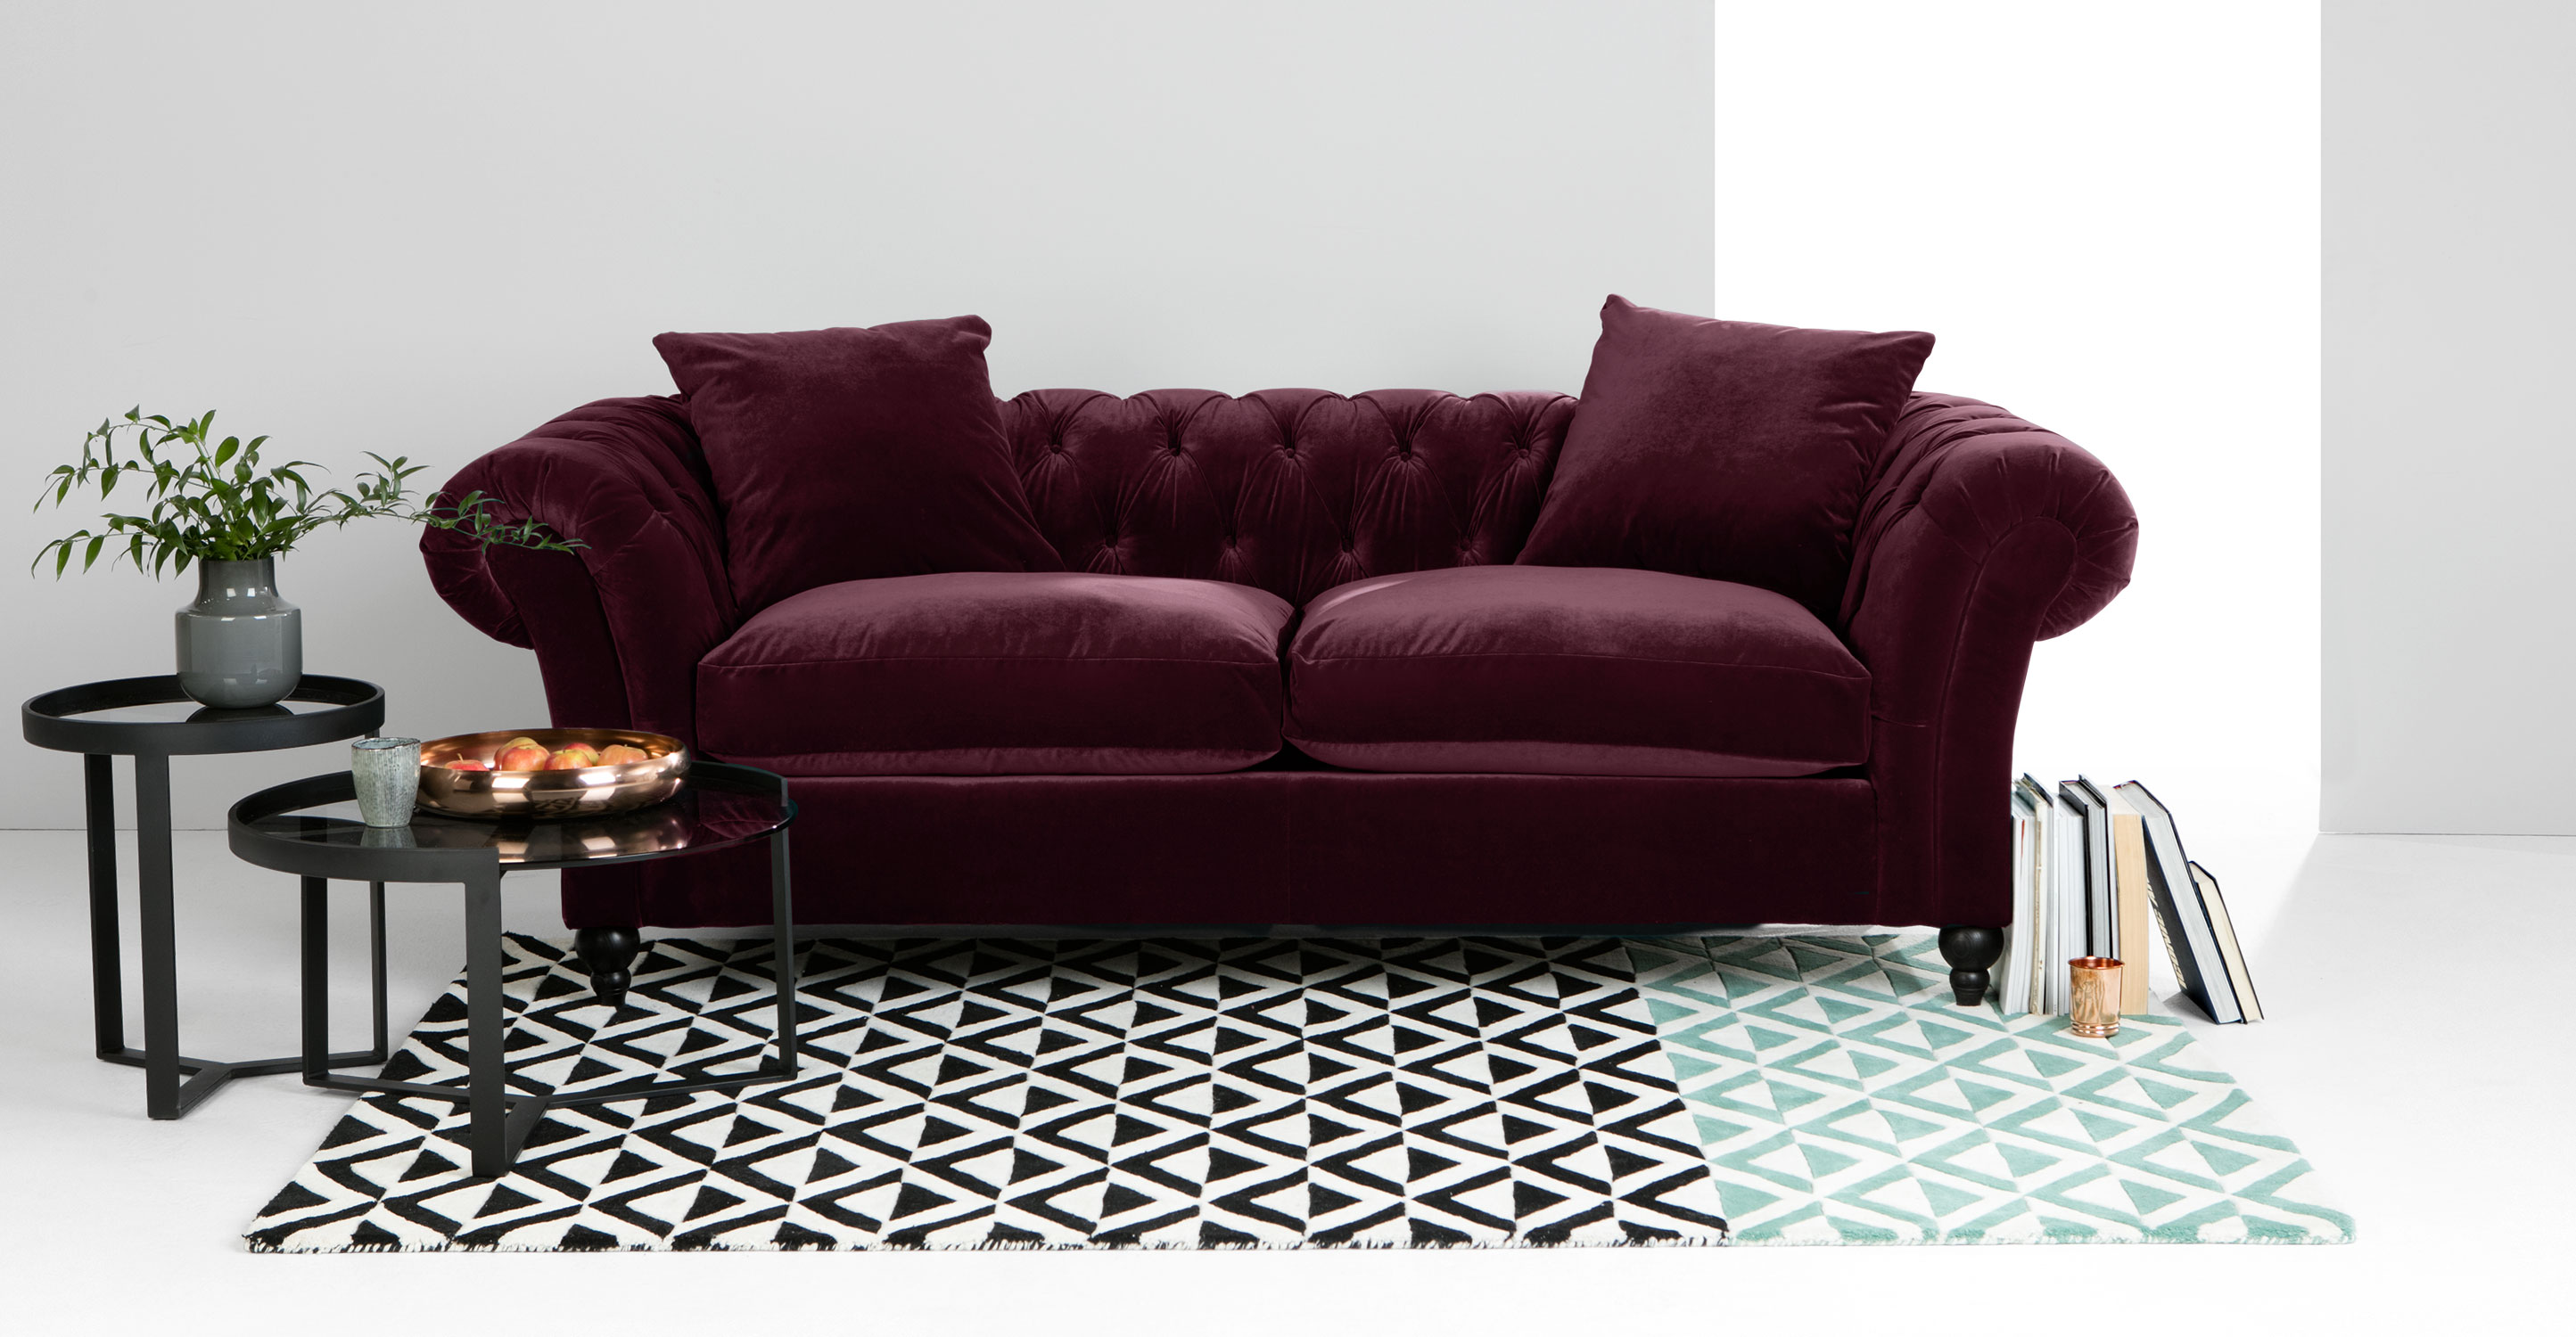 Bardot canap chesterfield 3 places velours rouge merlot - Canape chesterfield en velours ...